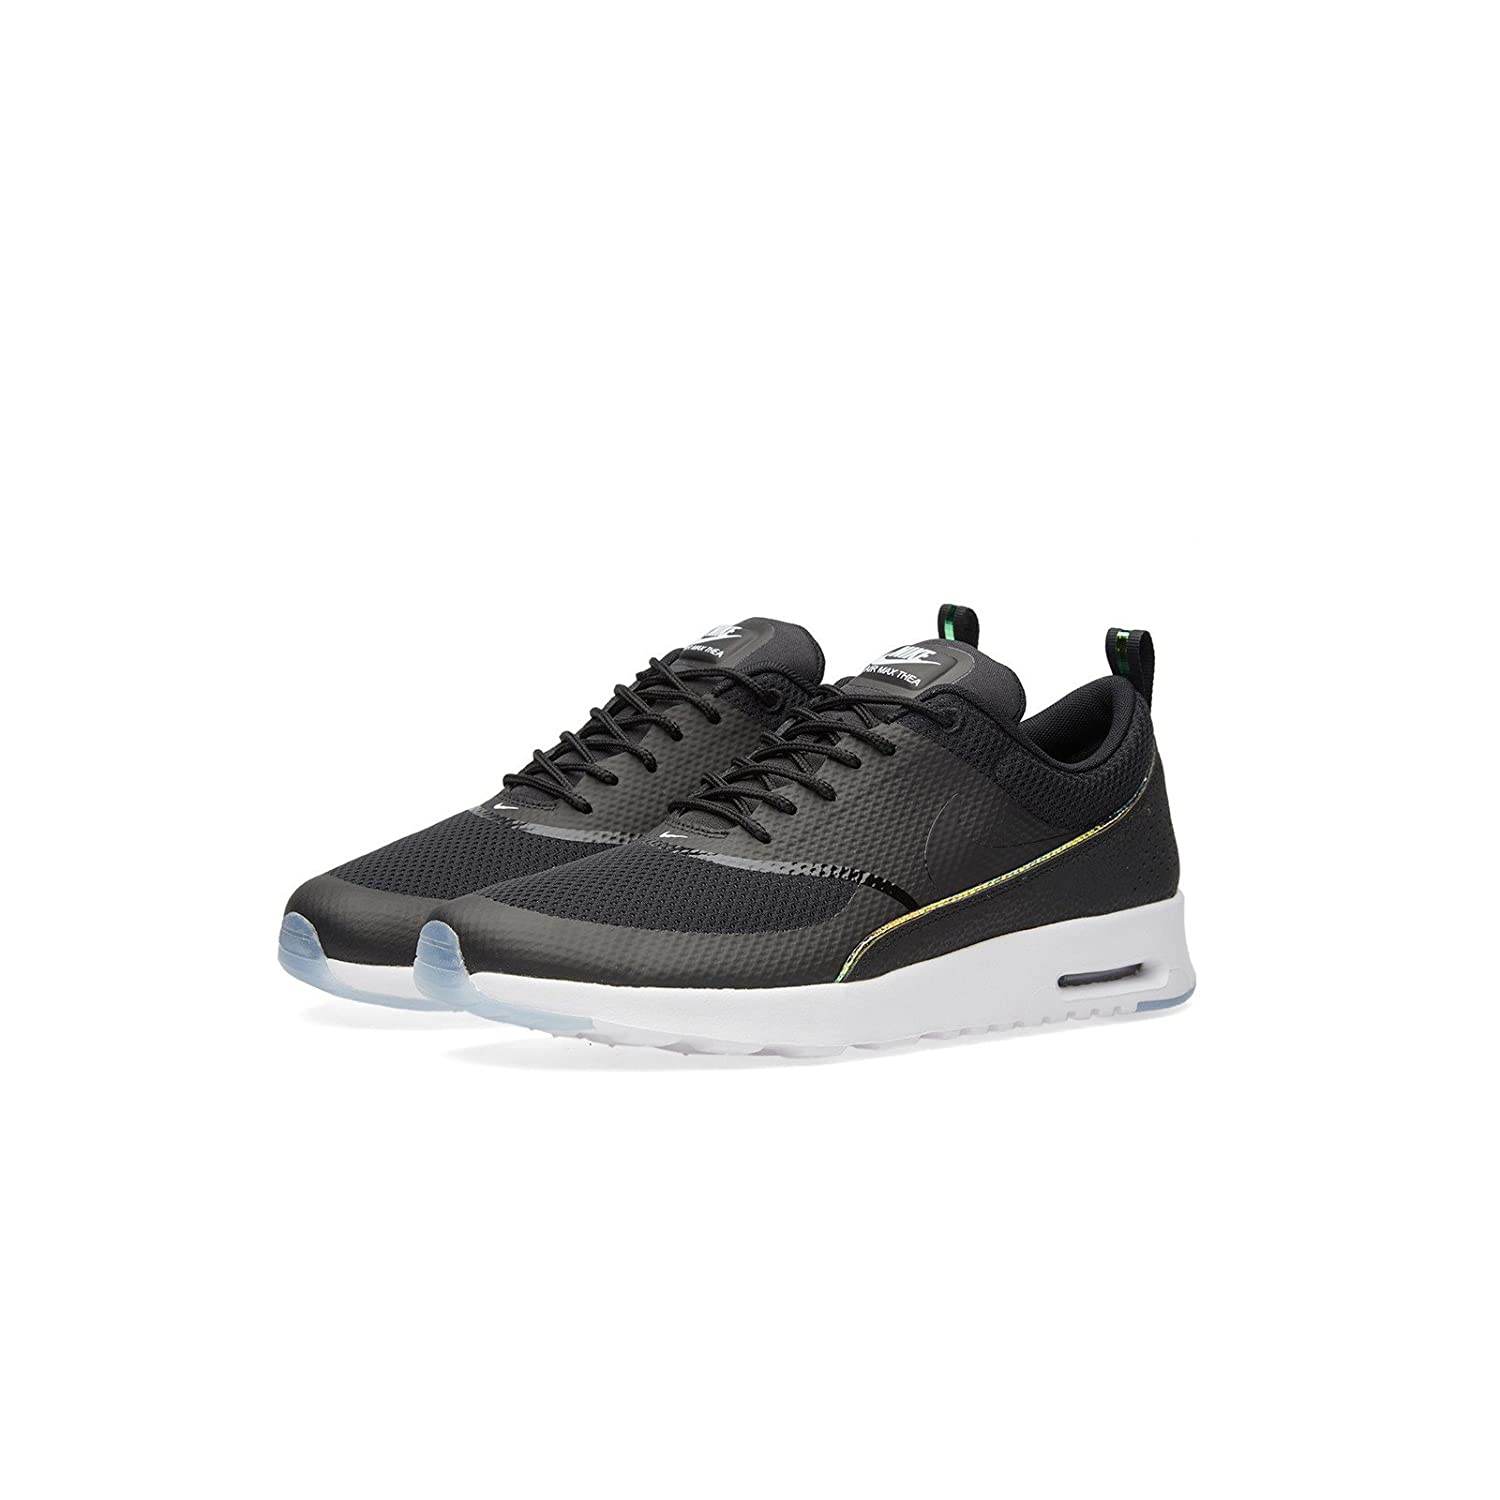 Nike – Wmns Air Max Thea Prm Womens Shoes BlackBlack Blue Tint